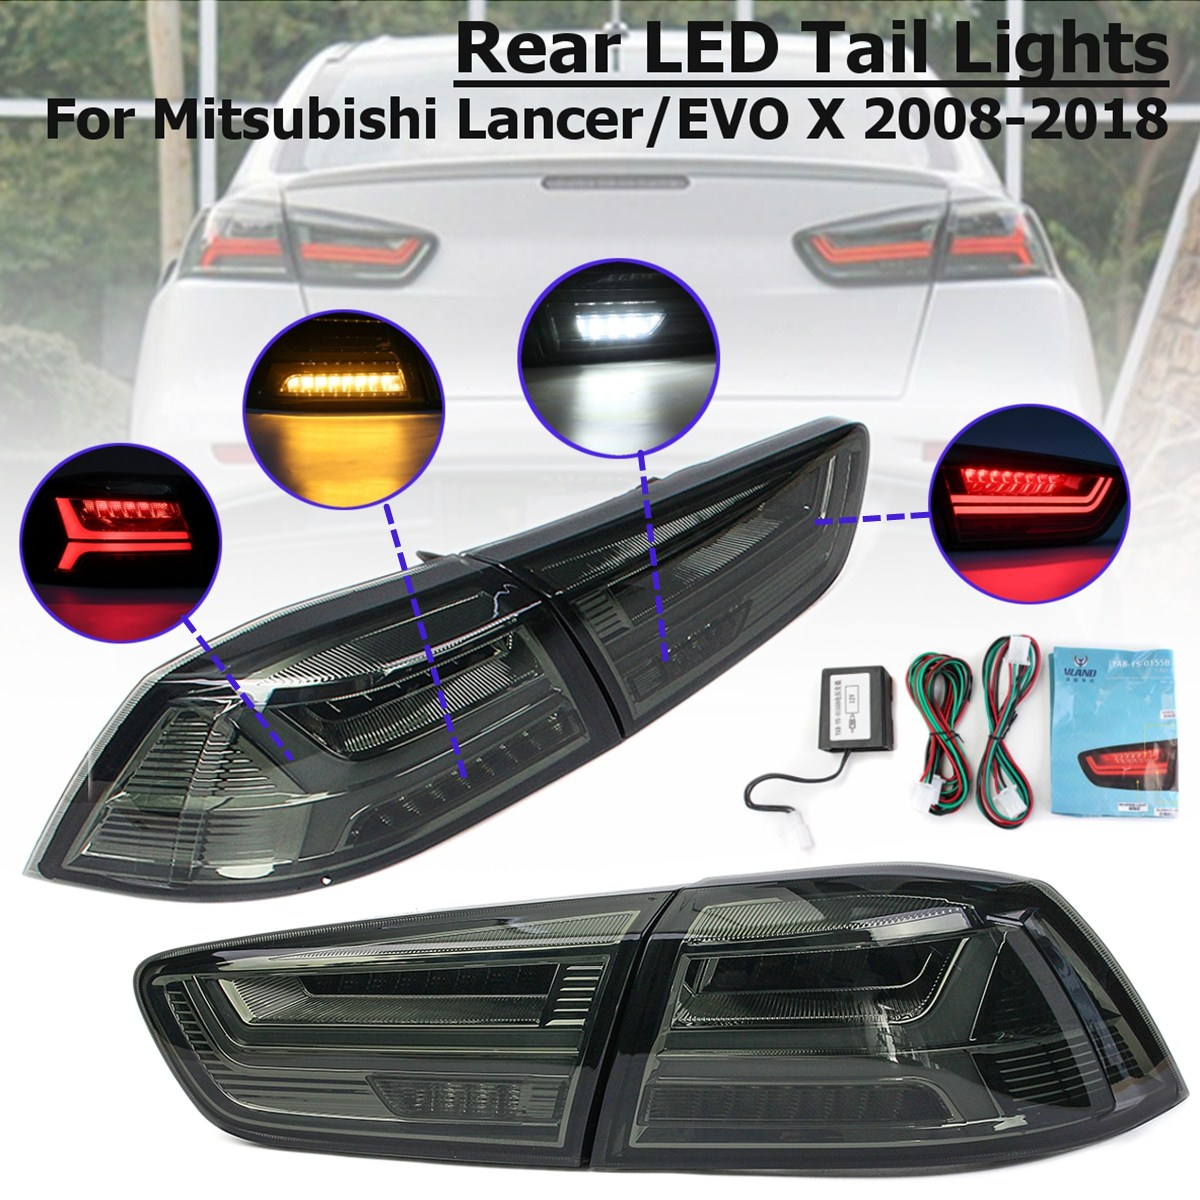 1 Pair Rear LED Tail Brake Light Lamps for Mitsubishi Lancer/EVOx2008-2017 Tail Light Signal LED DRL Stop Rear Lamp Accessories free shipping led tail lamps assy bm style light bar rear lamps tail lights fit for hyundai elantra 2012 2015